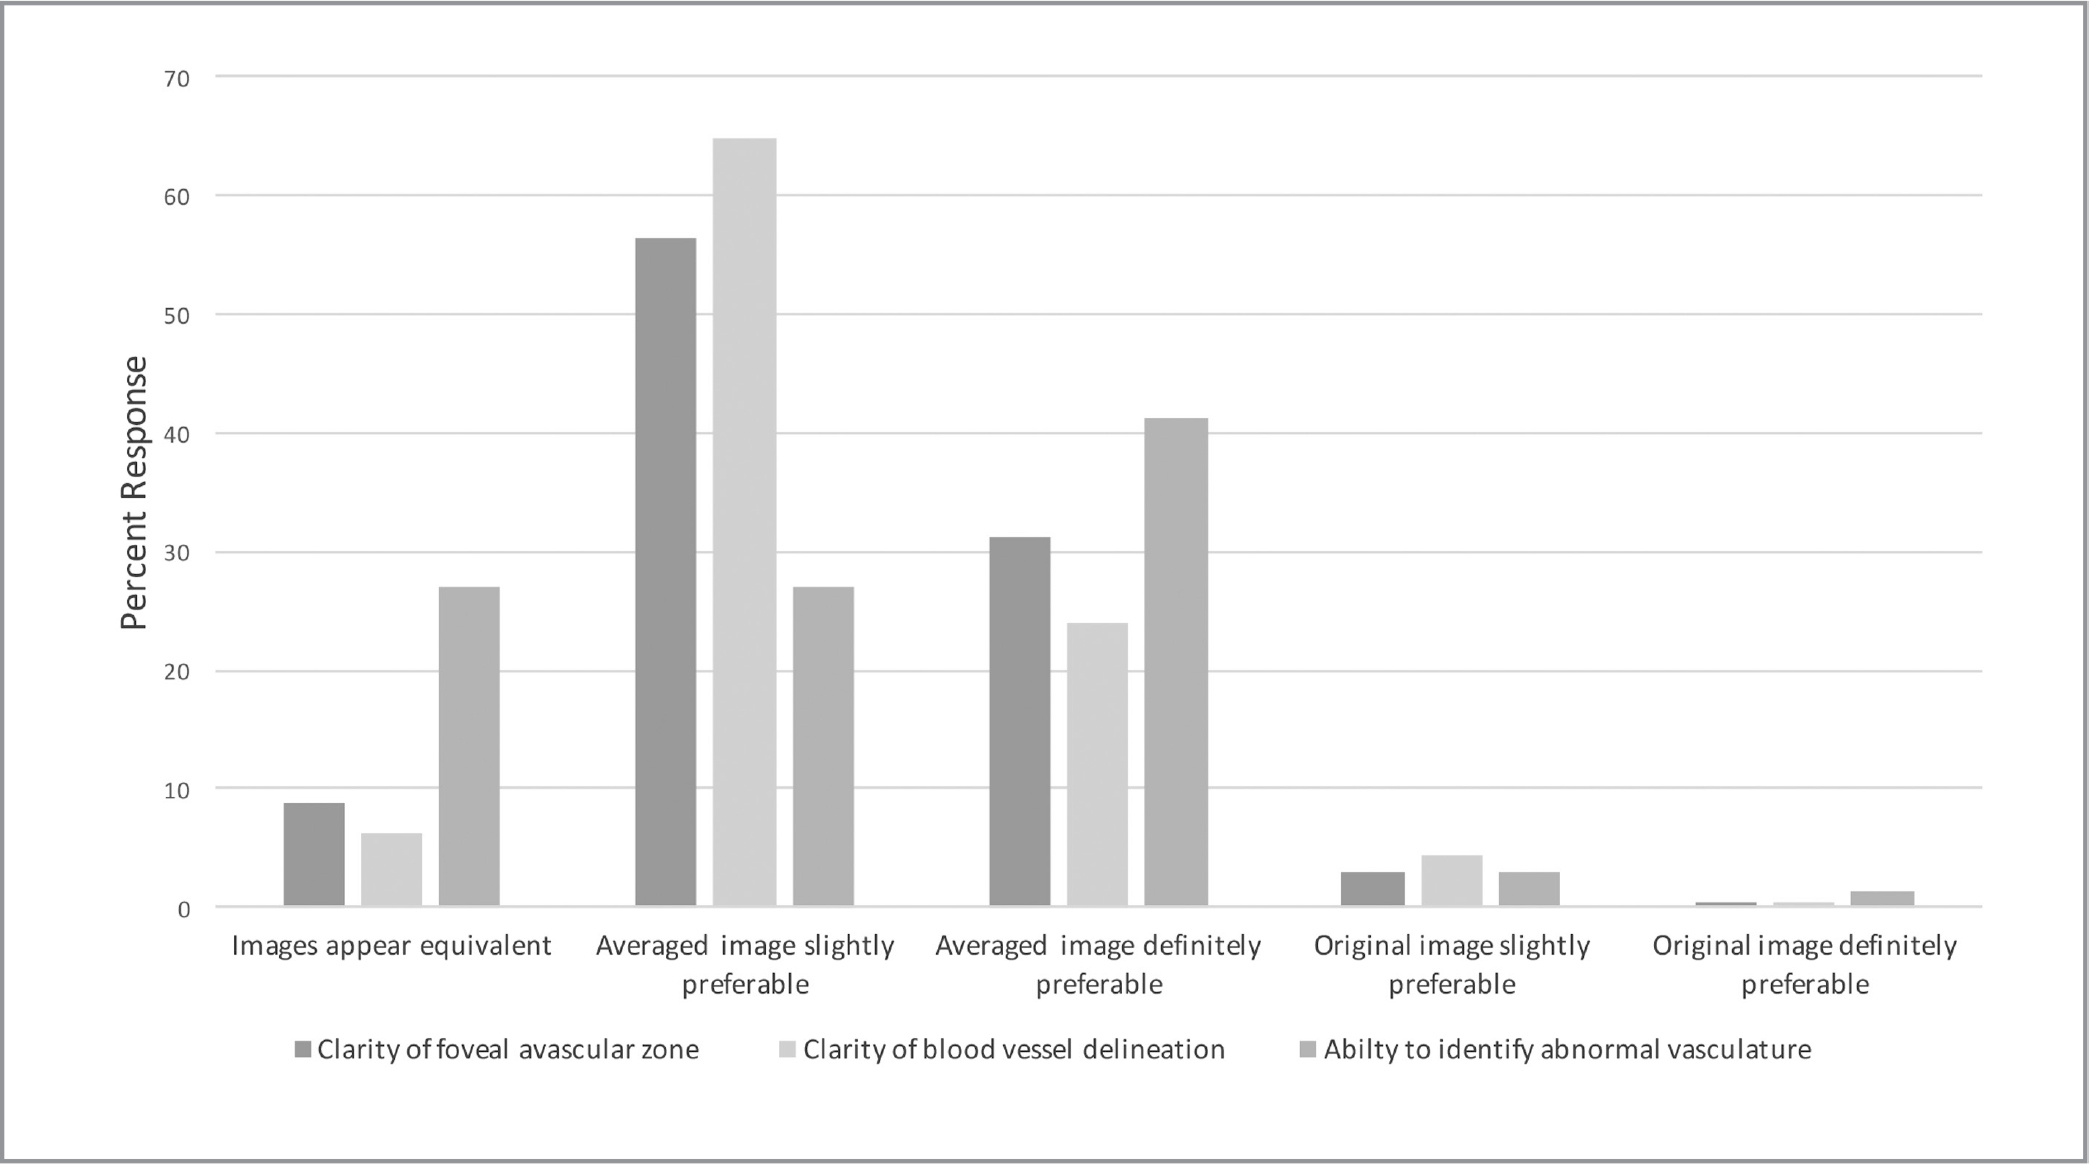 Preferences of image graders comparing original optical coherence tomography angiography images to those averaged using Photoshop. The averaged image was slightly or definitely preferred over the original images 87%, 89%, or 69% of the time with respect to the clarity of foveal avascular zone, blood vessel delineation, and ability to identify abnormal vasculature, respectively.